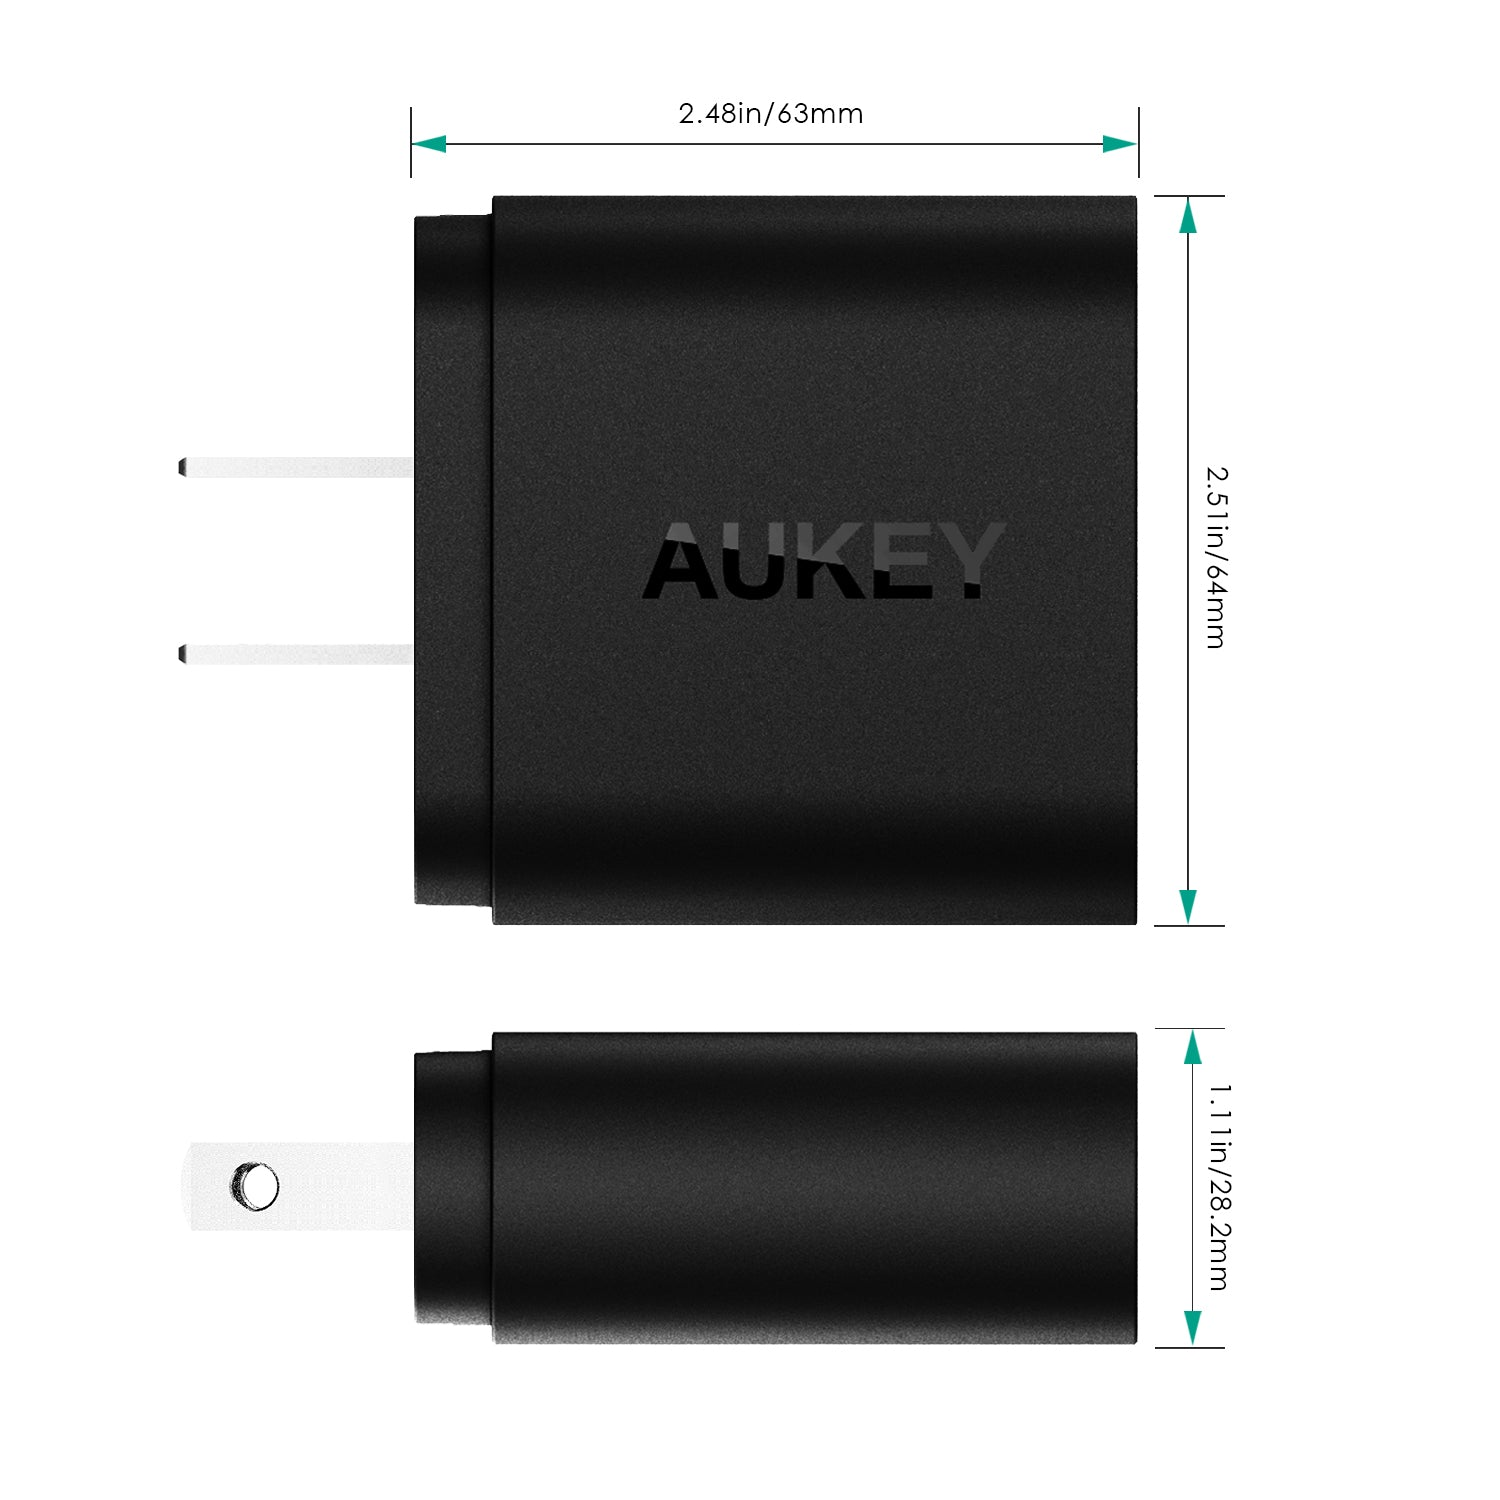 AUKEY PA-T13 Quick Charge 3.0 Dual-port 33W Wall Charger